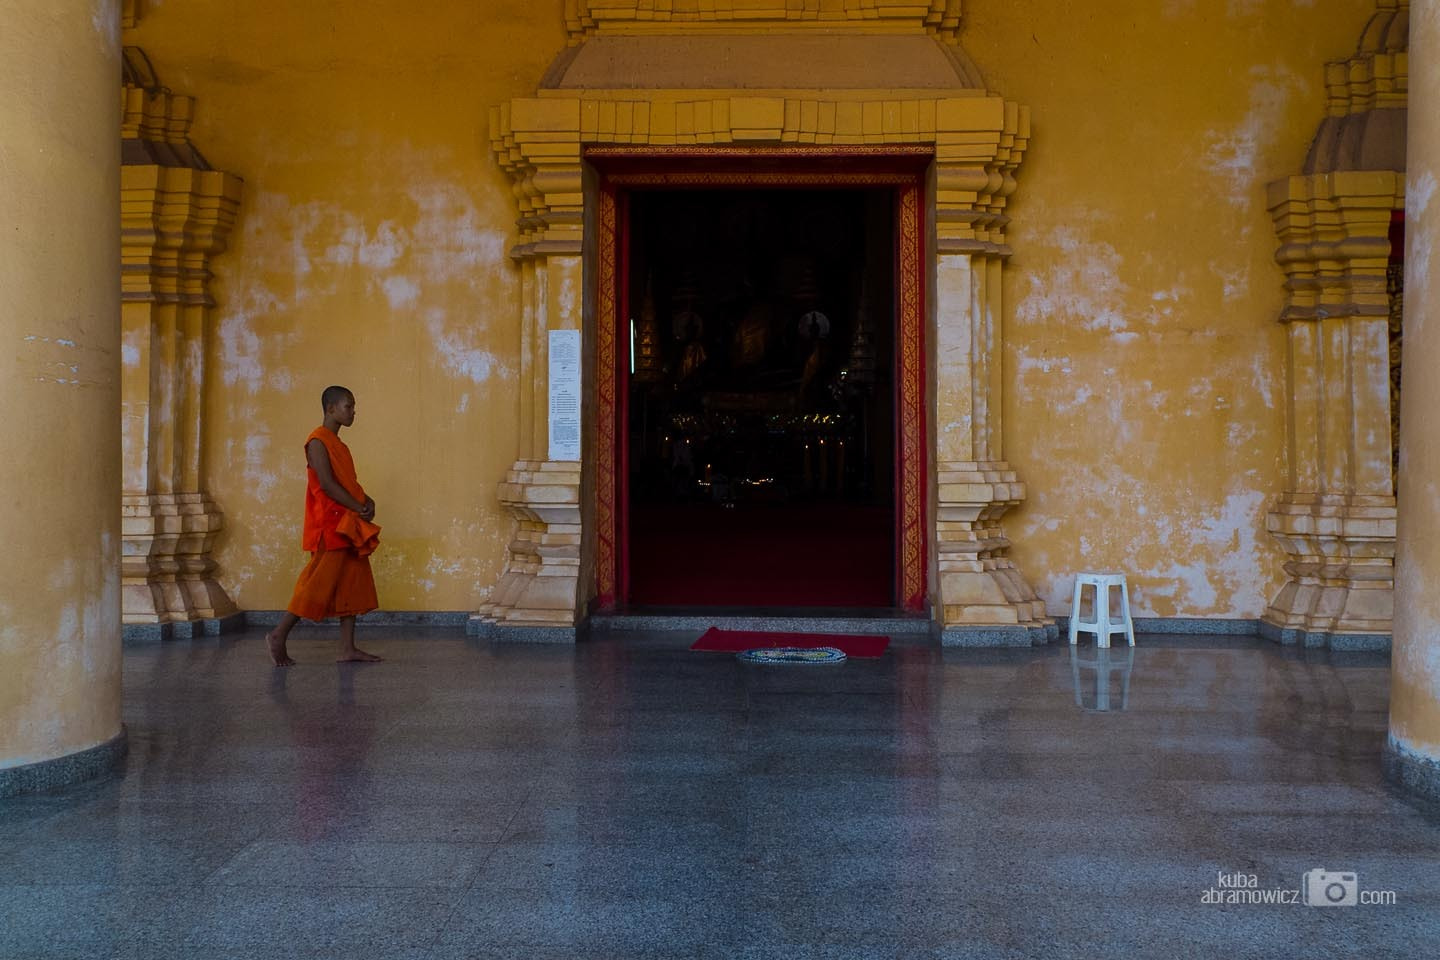 Photograph Monk in a temple by Kuba Abramowicz on 500px